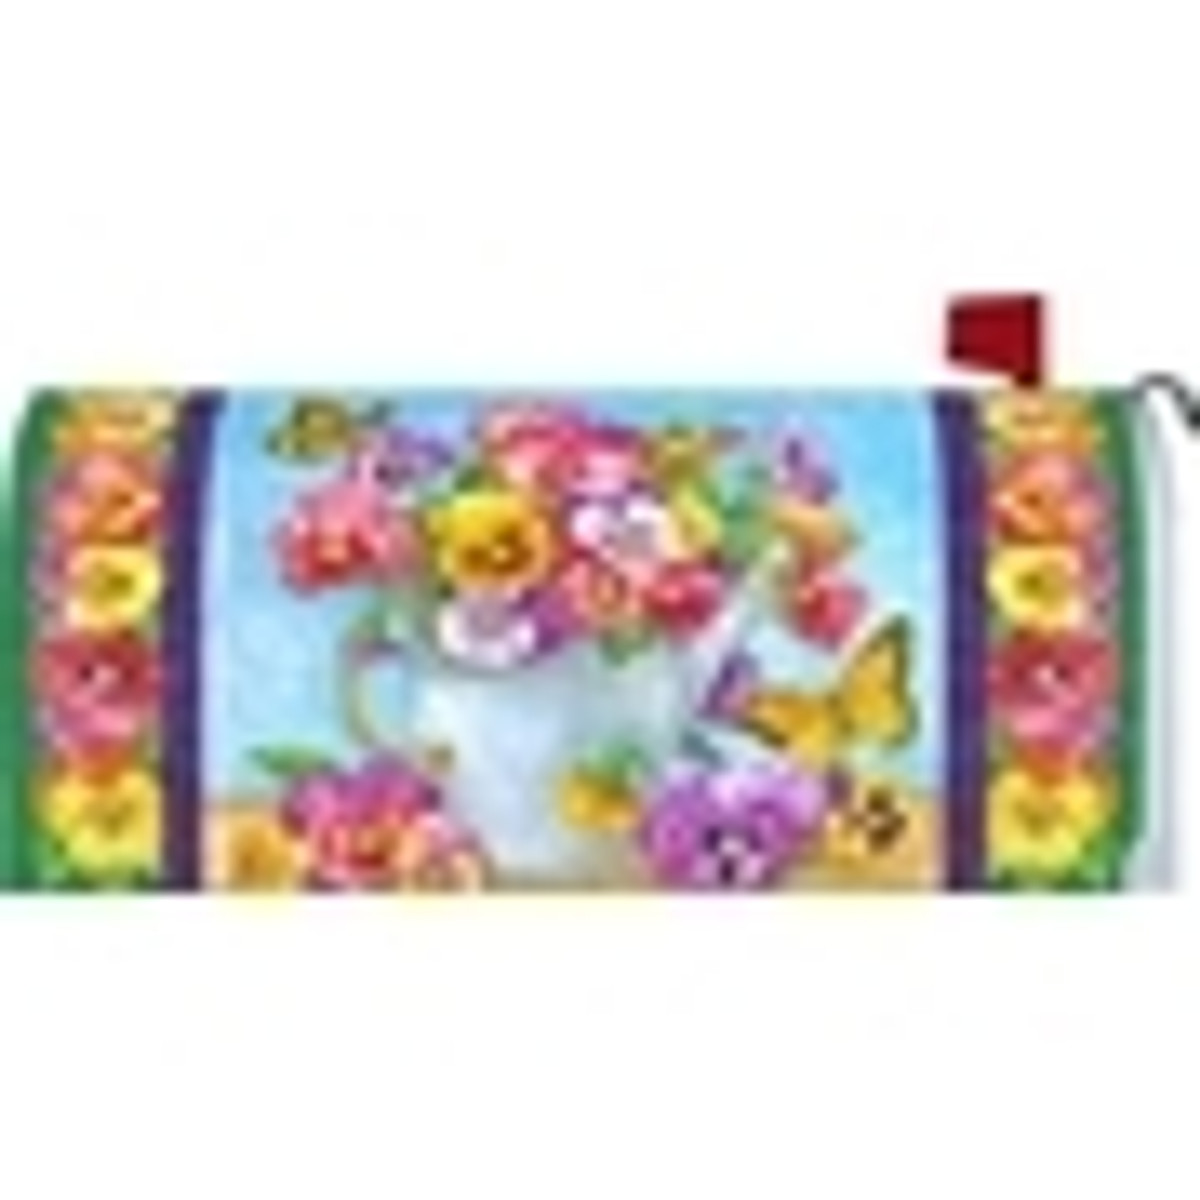 Summer & Spring Mailwraps Mailbox Covers